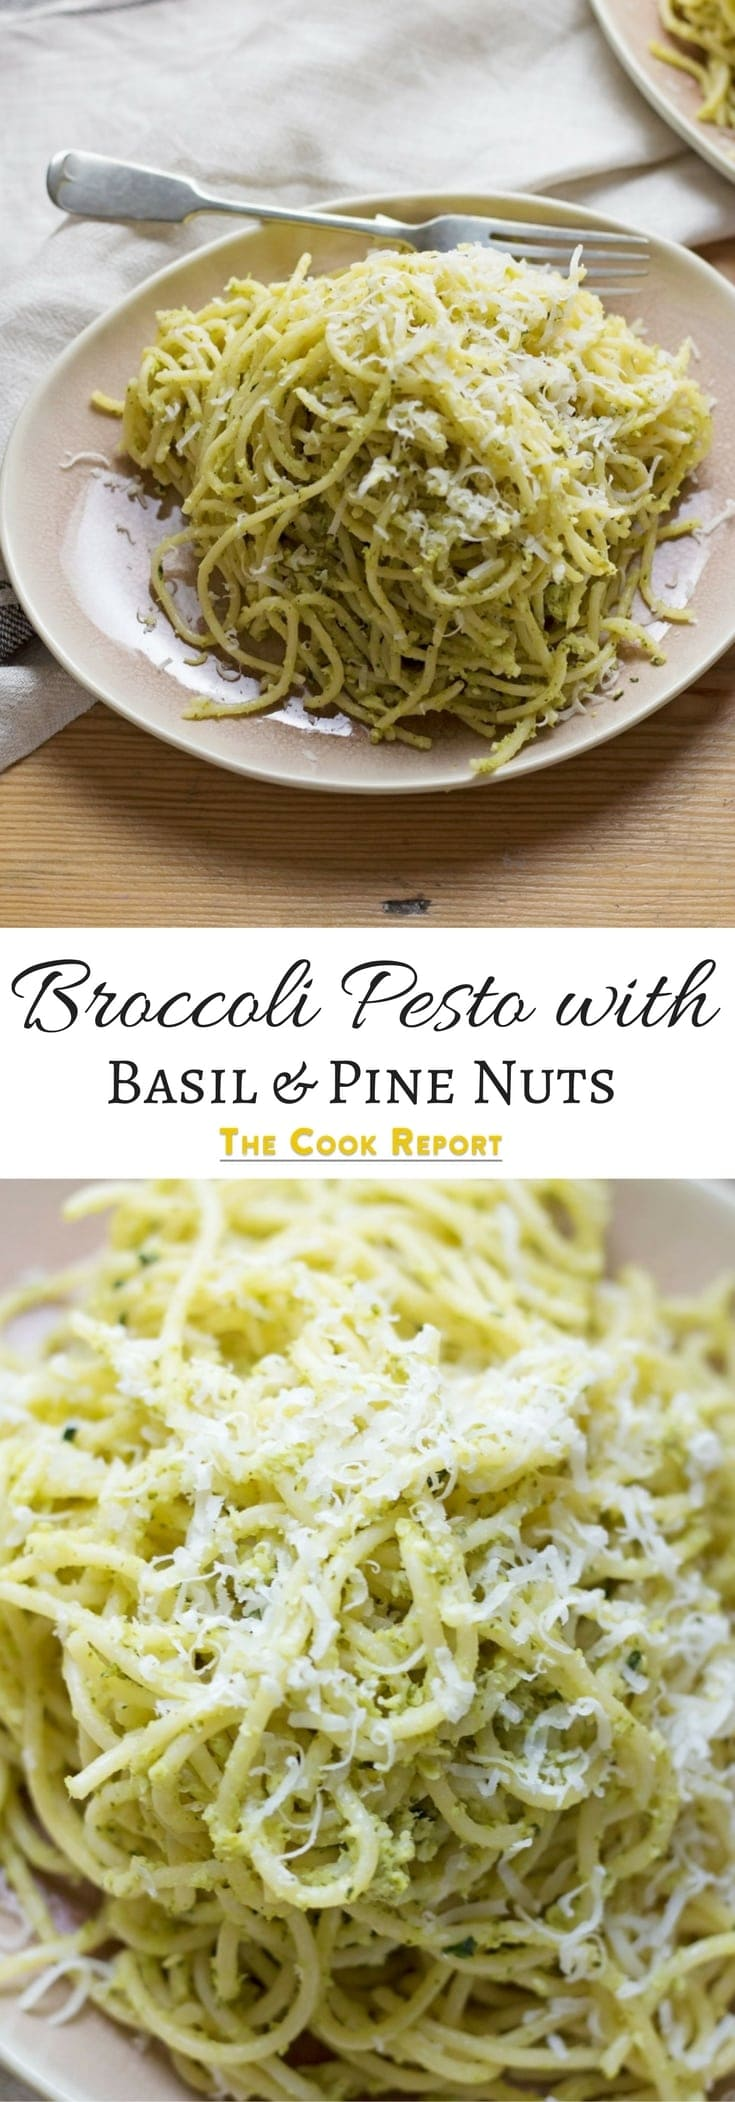 This quick and easy broccoli pesto is a fun twist on a classic pasta dish. Great for adding an extra vegetable to your dinner!